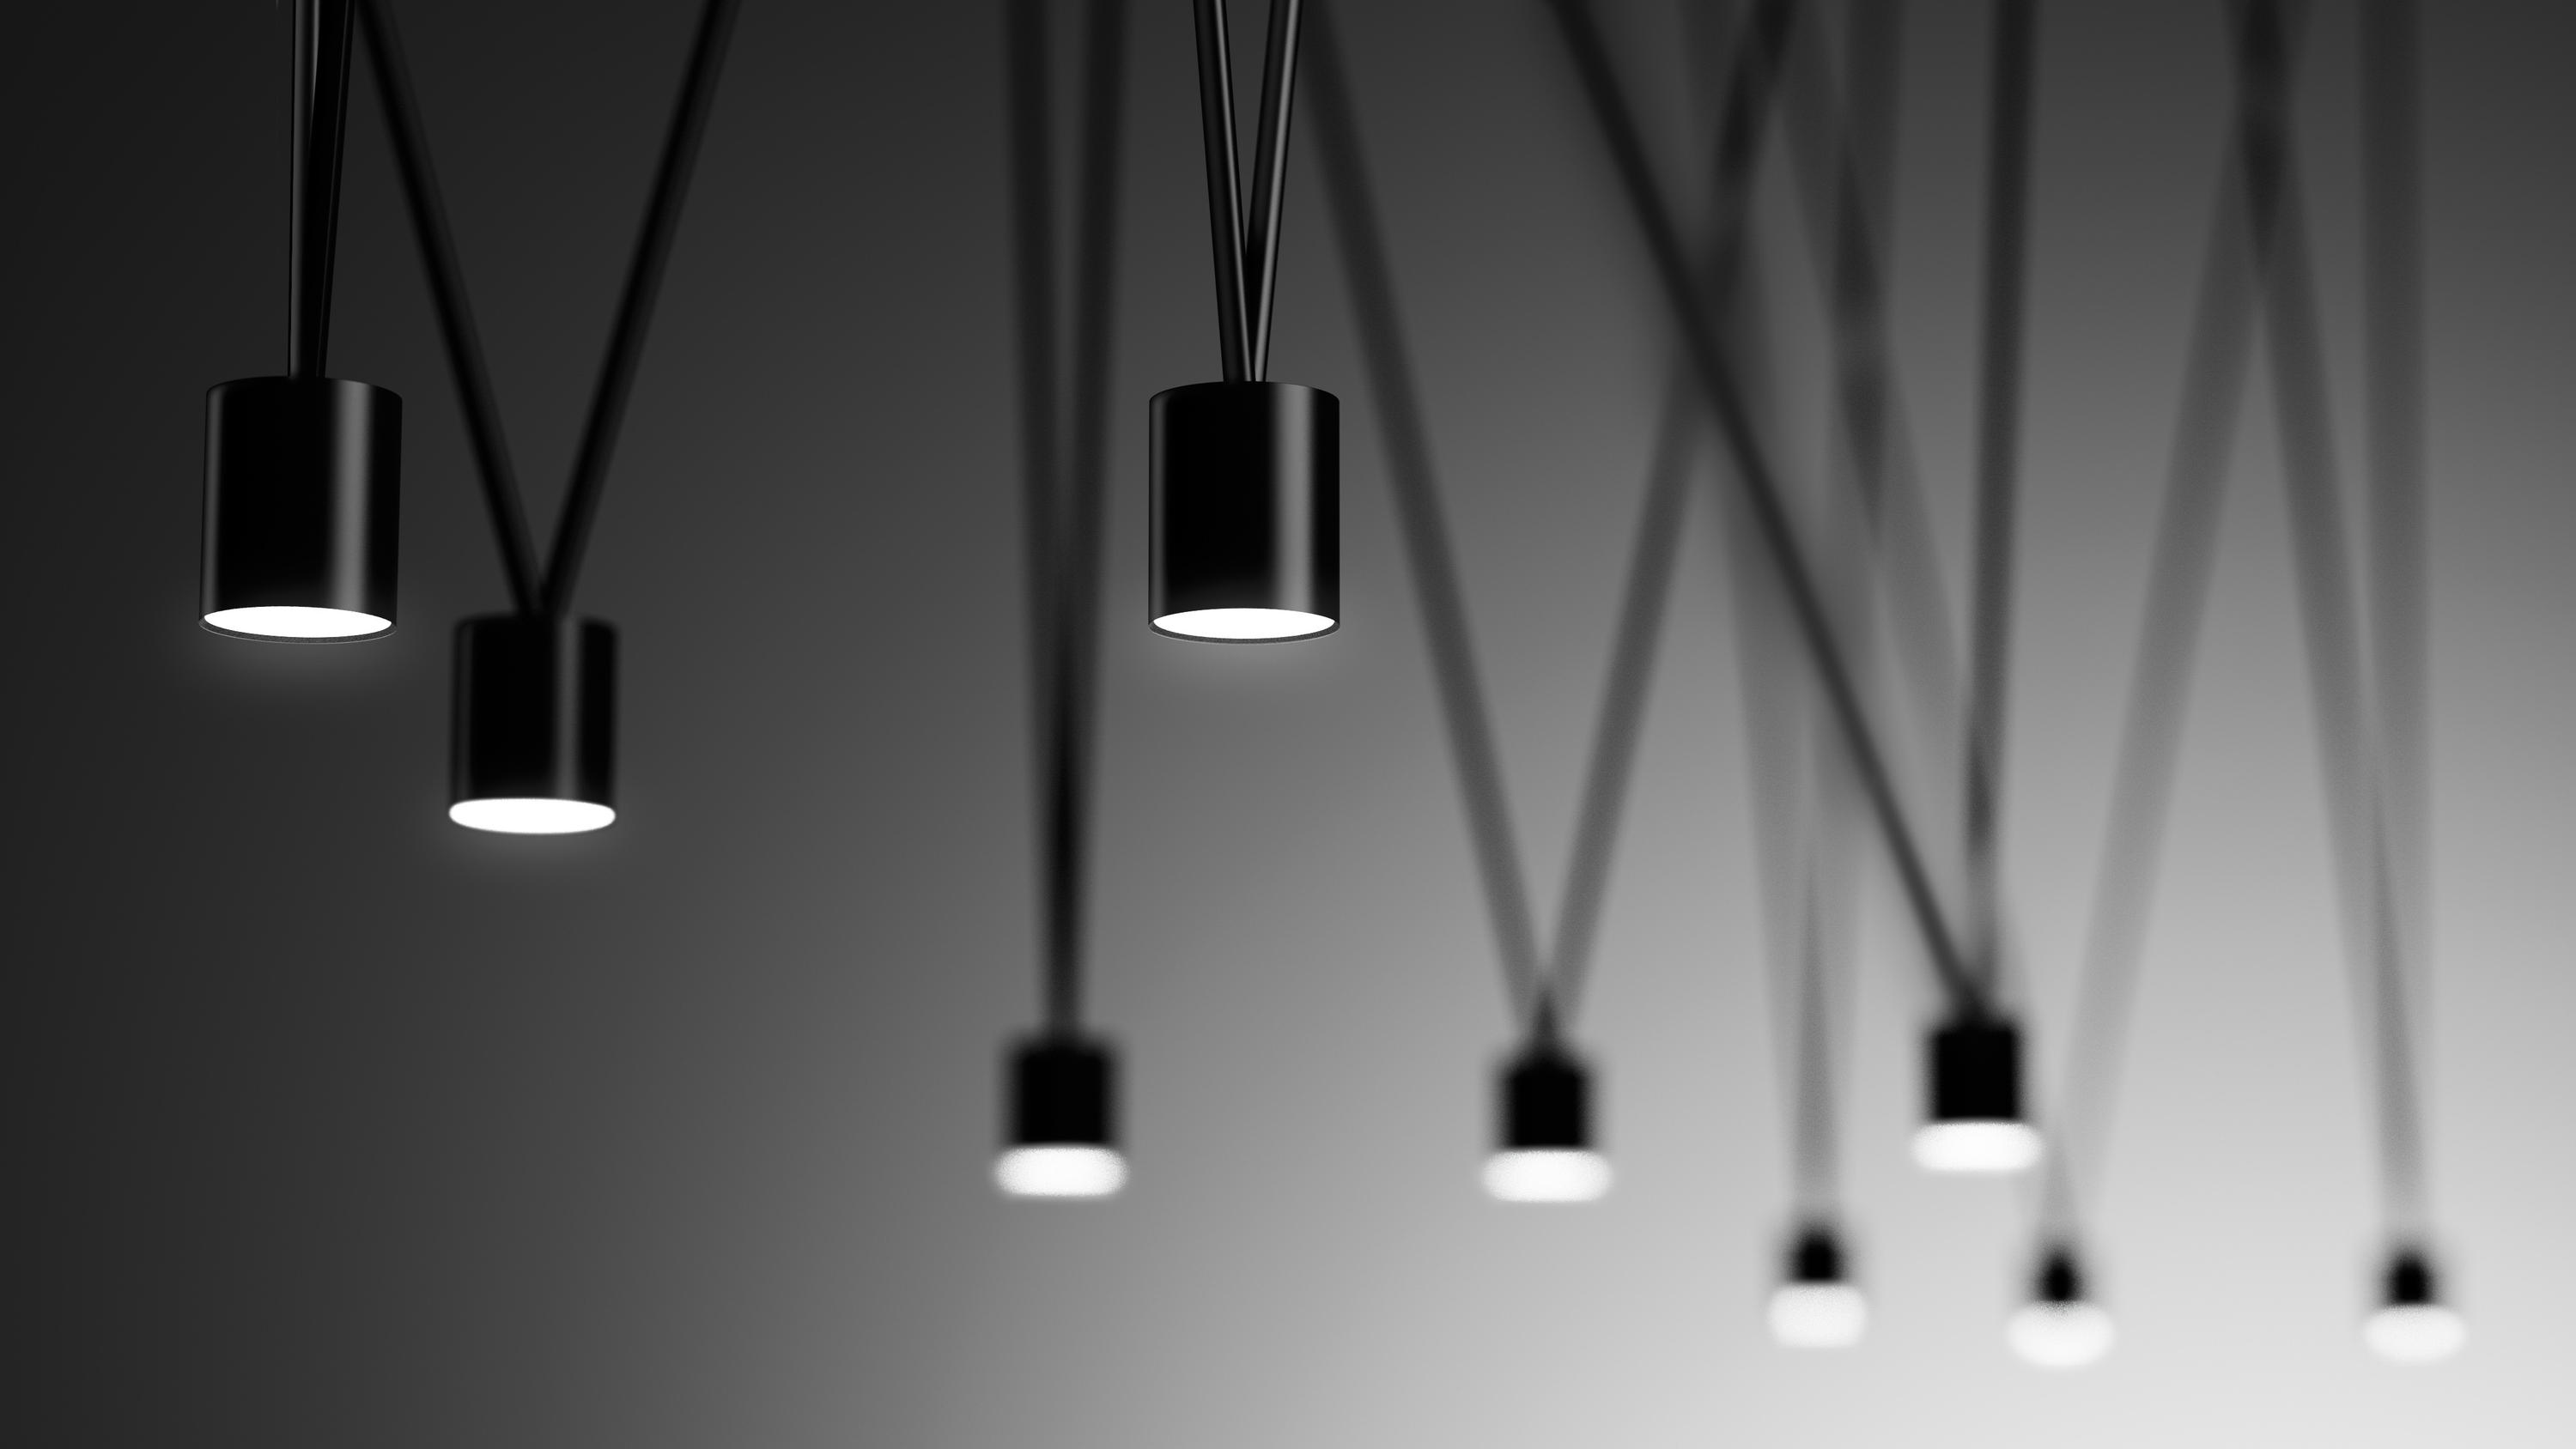 Match pendant lamp ceiling lights from vibia architonic match pendant lamp by vibia ceiling lights mozeypictures Images